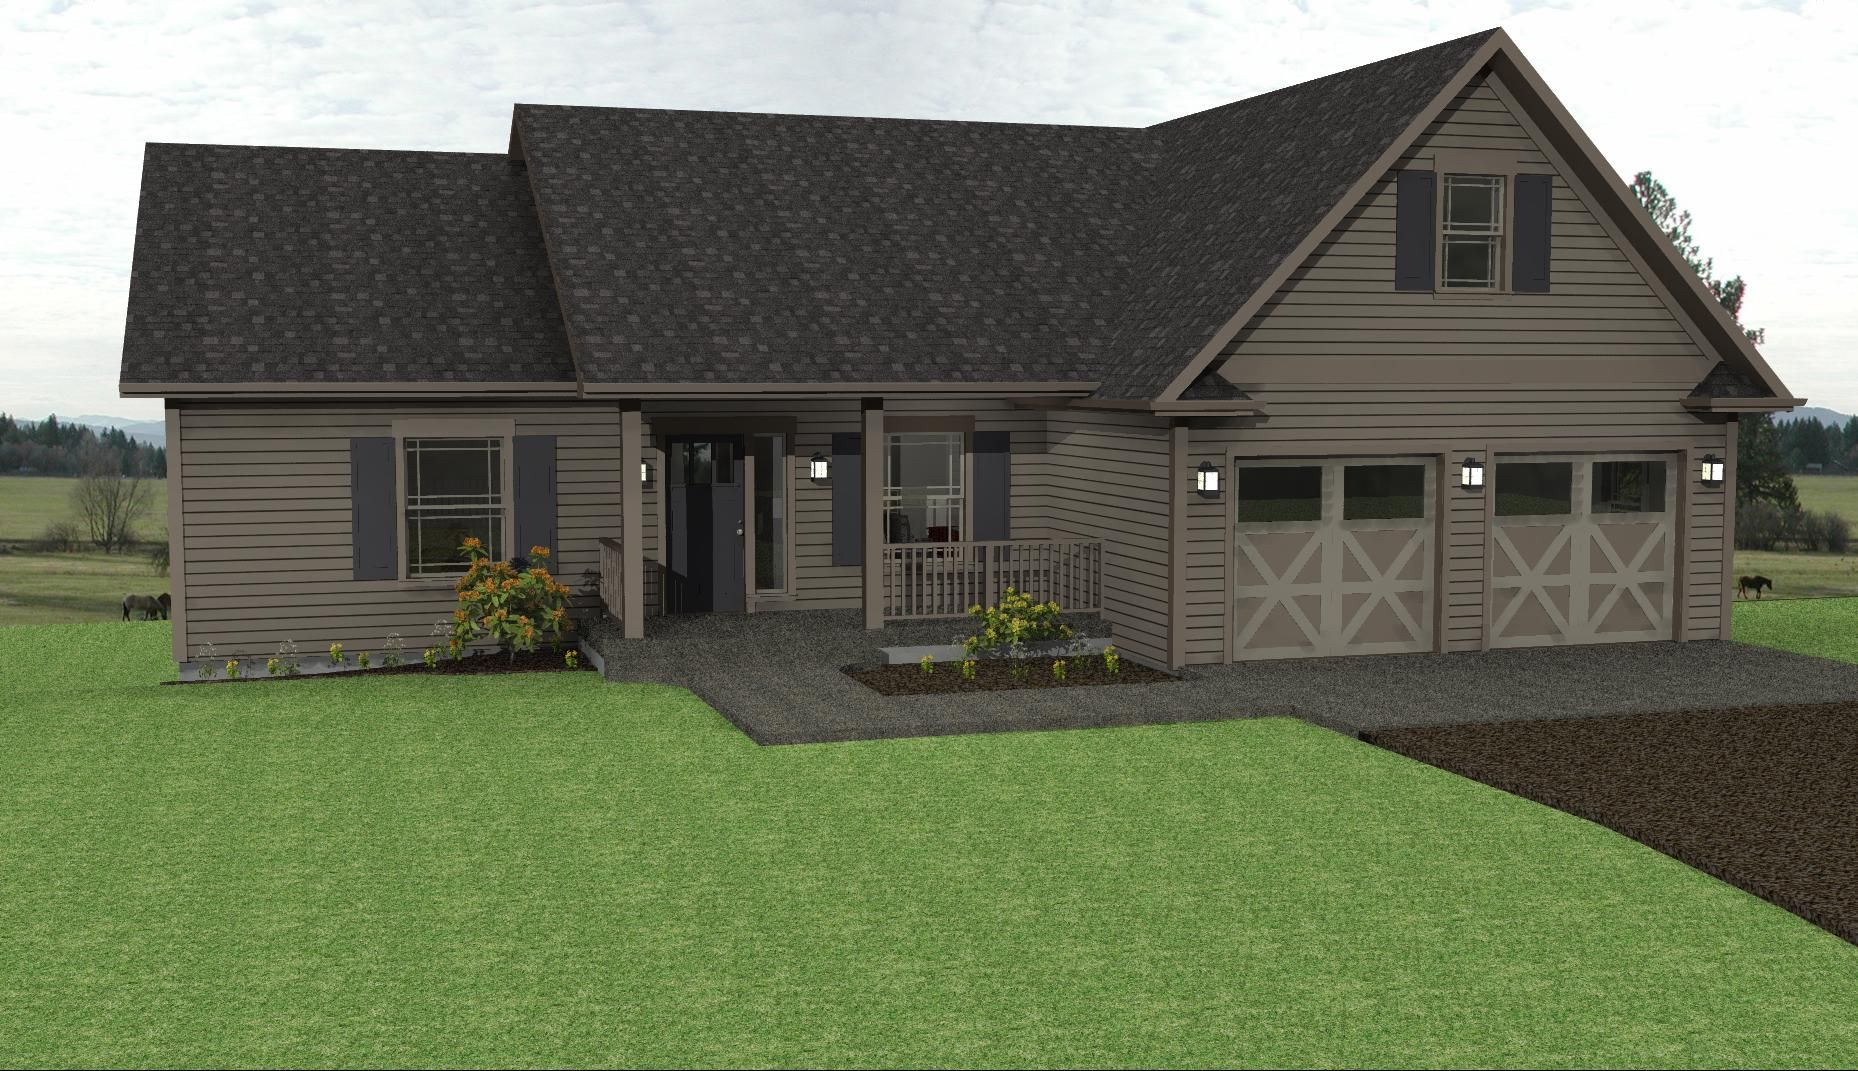 country ranch house plans affords all the spaces of a bigger home